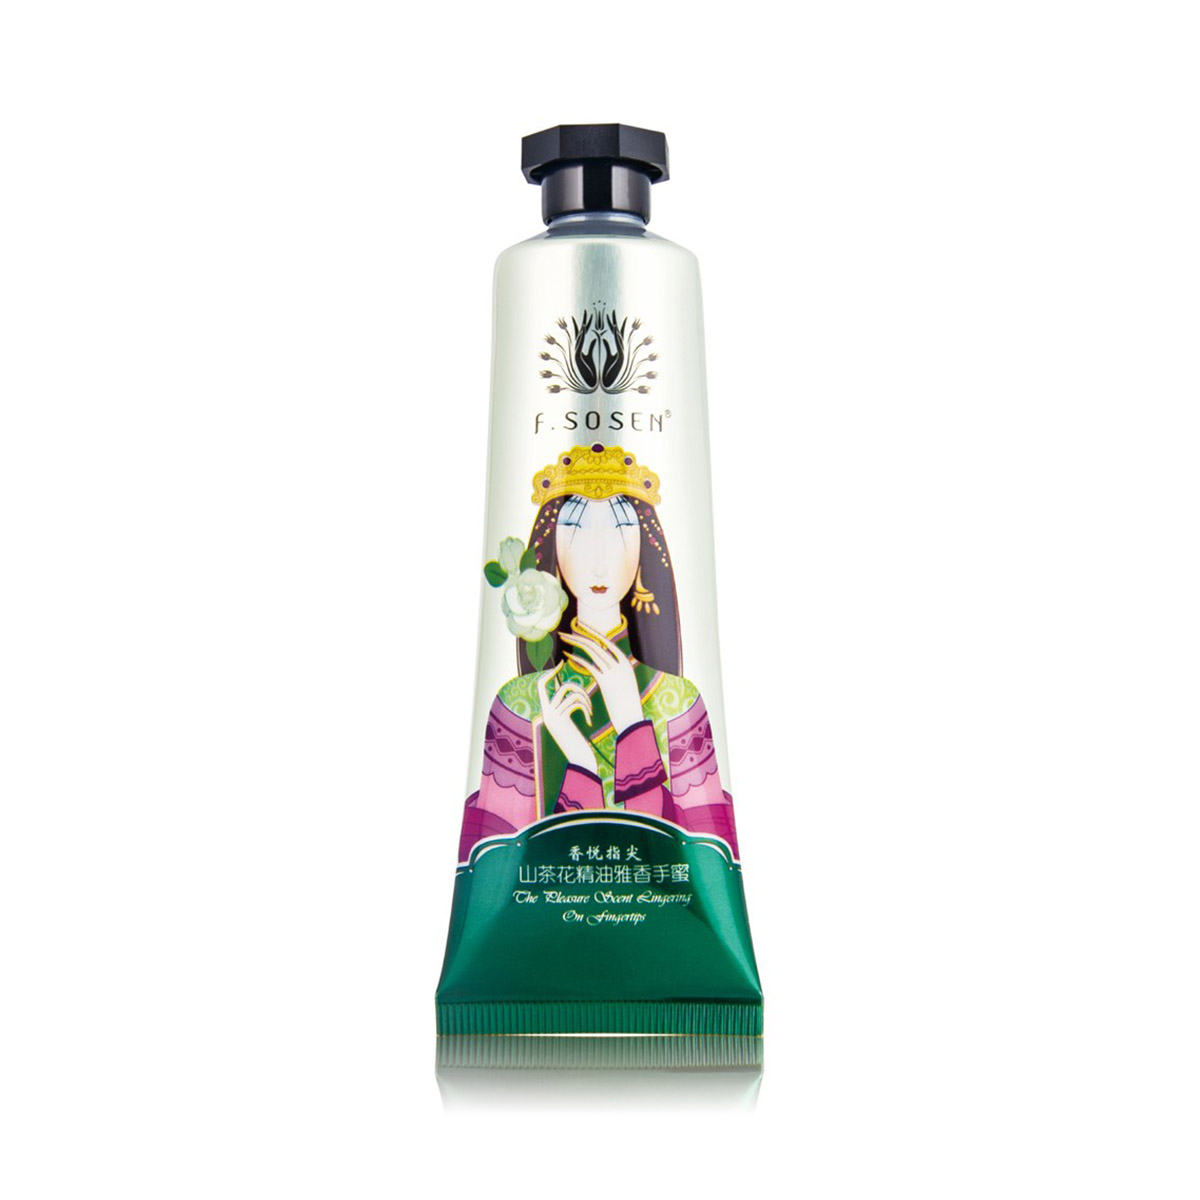 Bergamot senate hong yue fingertips · camellia oil nga hand honey 50g refreshing gel is not greasy sticky Greasy